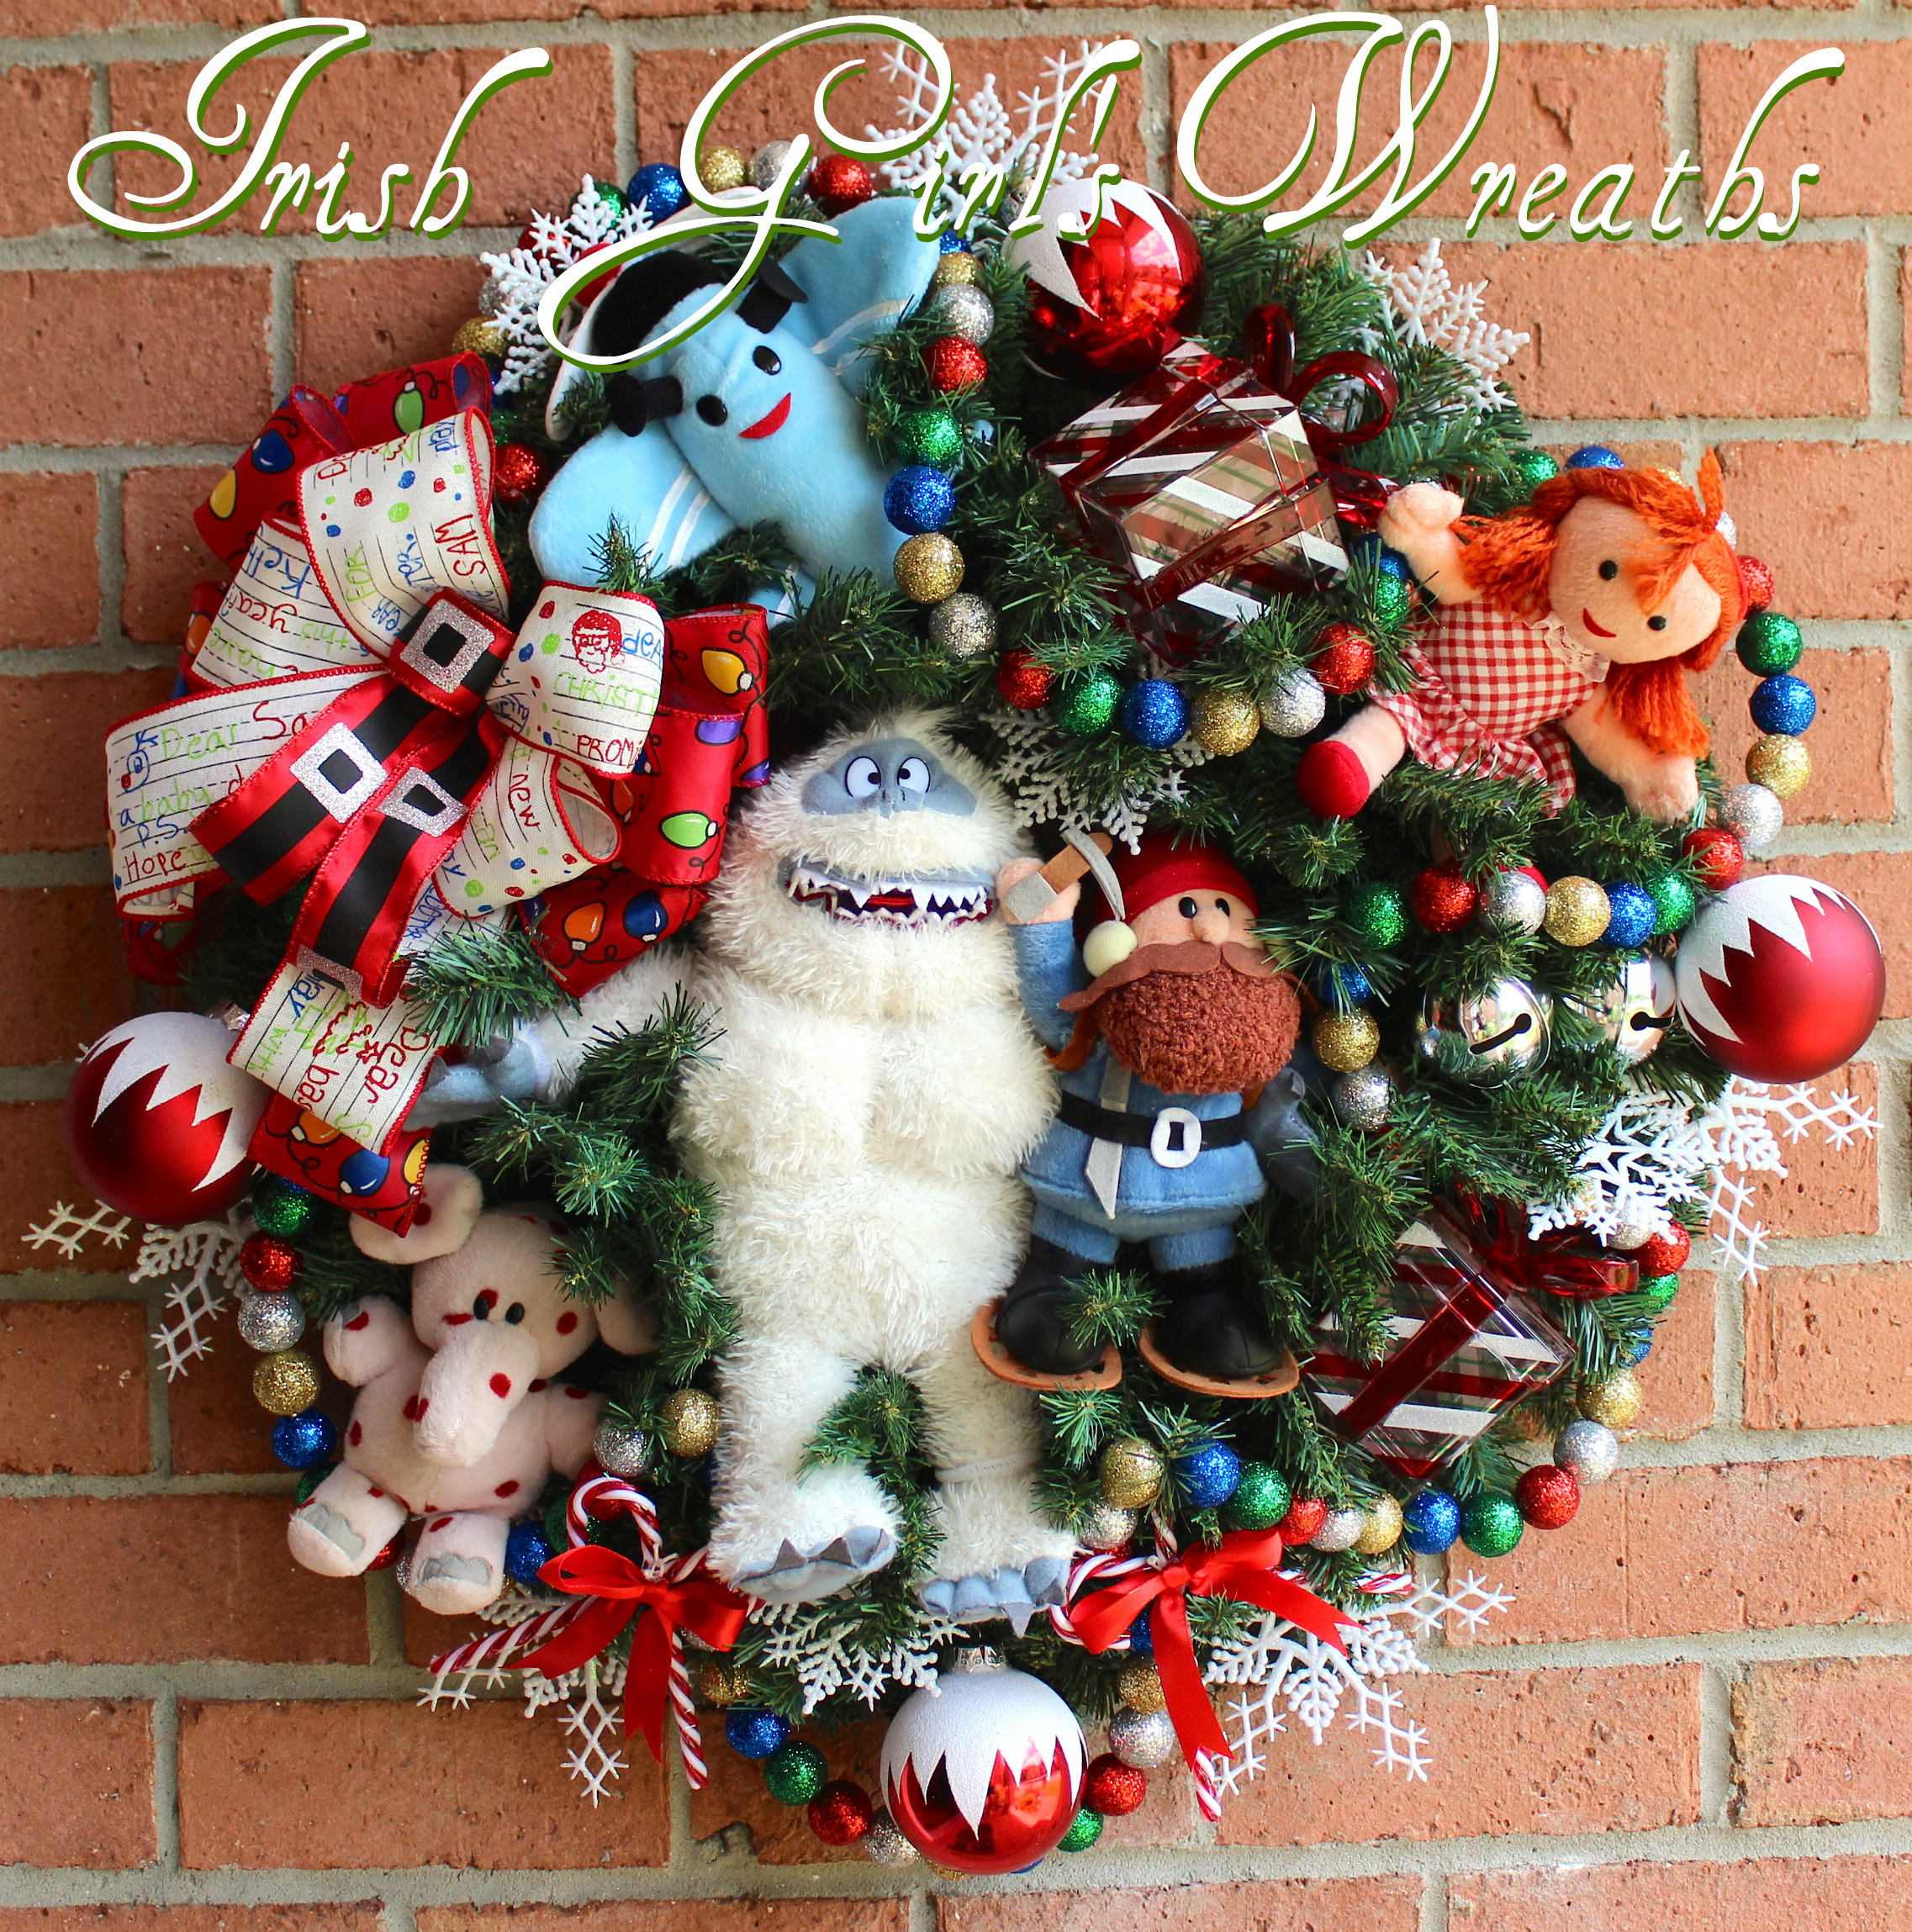 Rudolph Bumble SnowMonster Misfit Toys Wreath, Yukon Cornelius, spotted Elephant, Misfit Dolly, Misfit Airplane